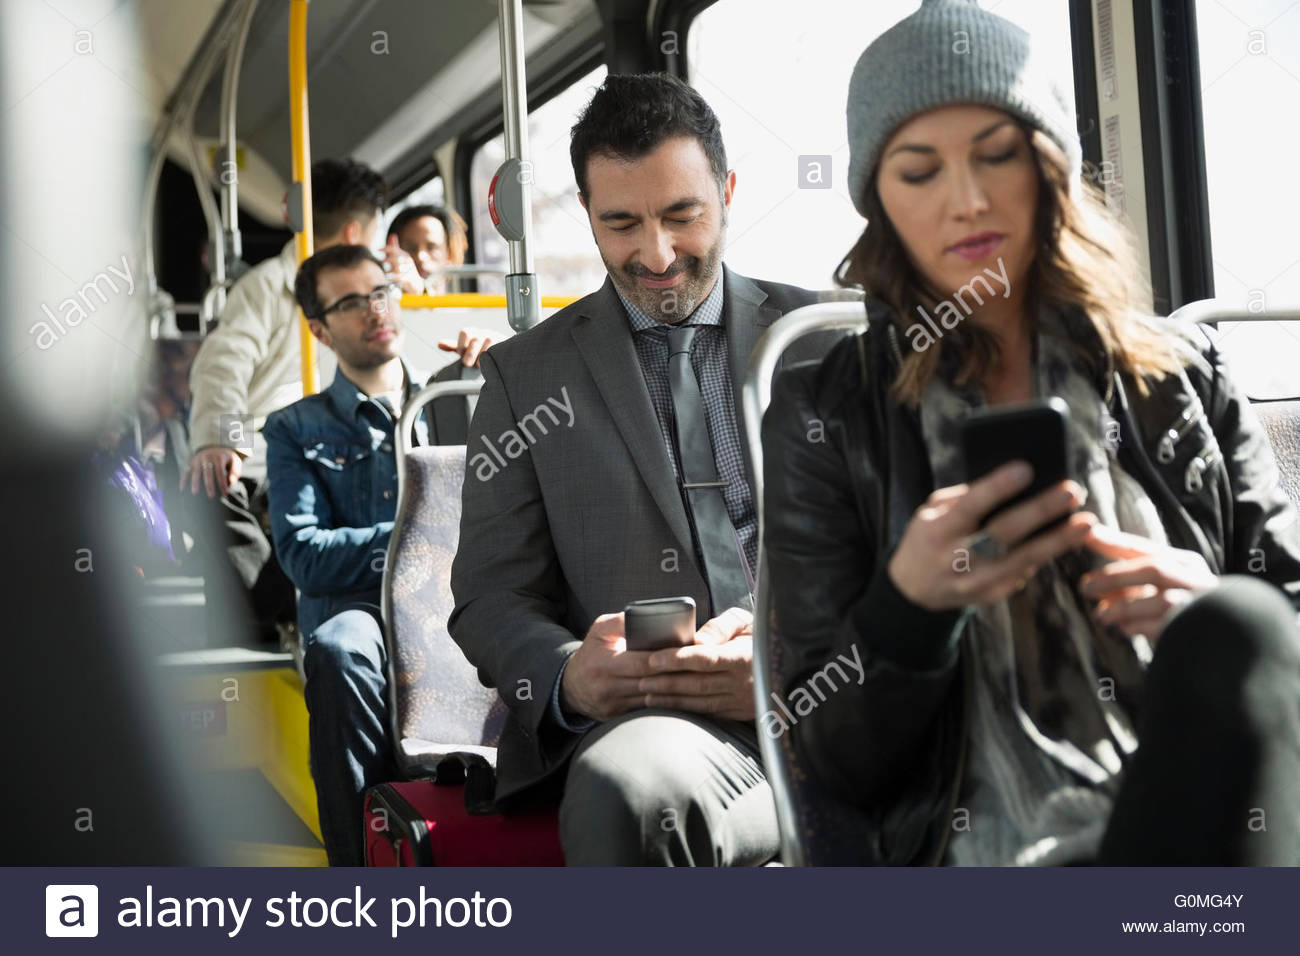 People using cell phones on bus - Stock Image